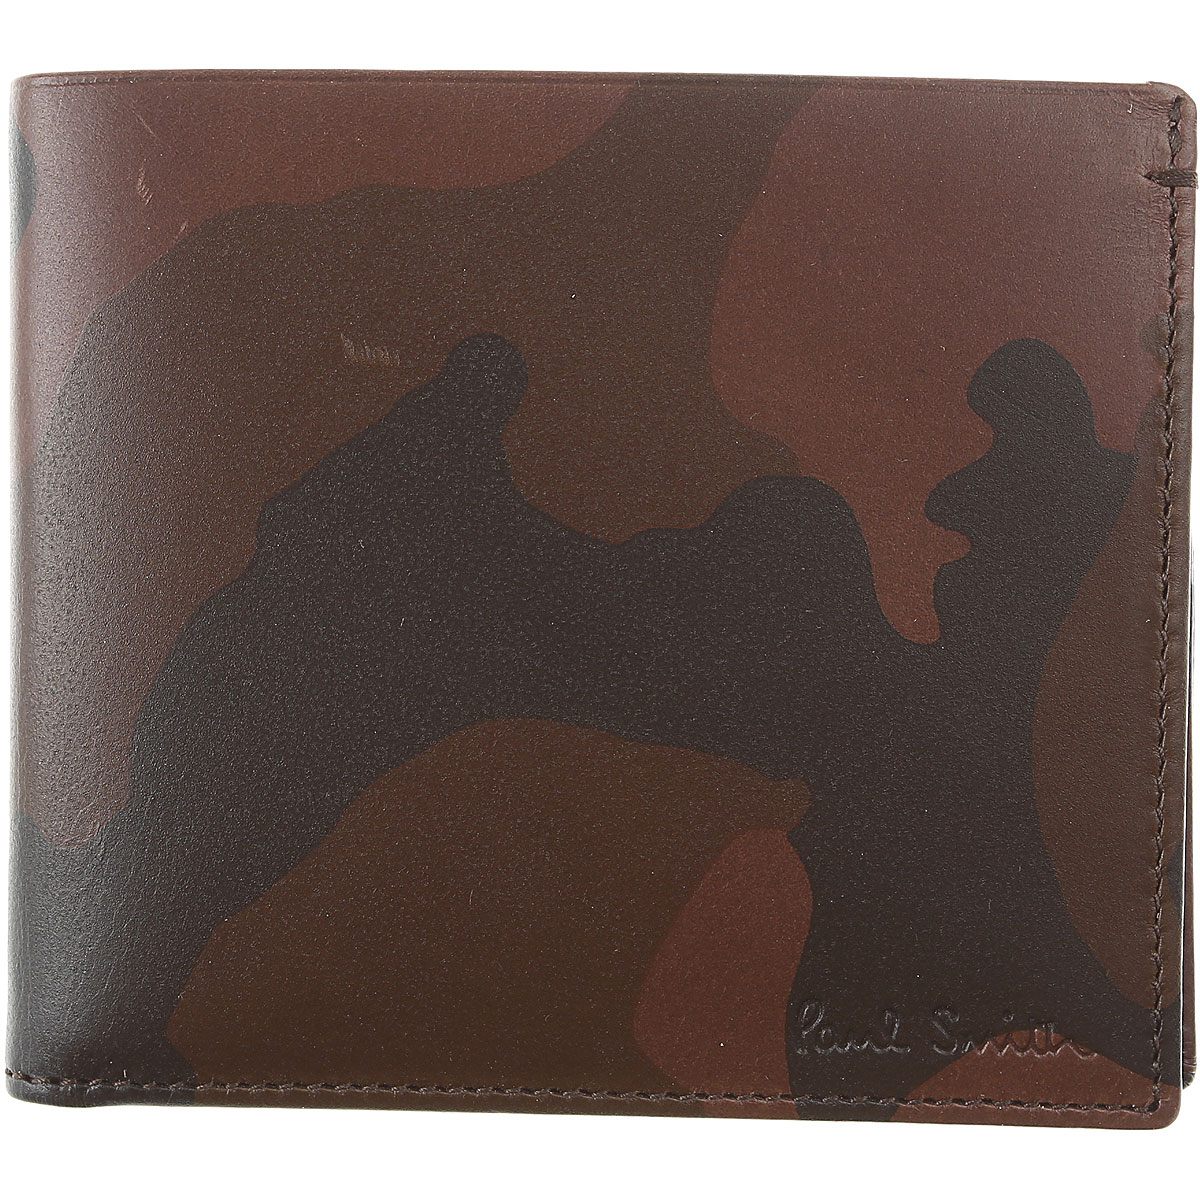 Paul Smith Wallet for Men camouflage USA - GOOFASH